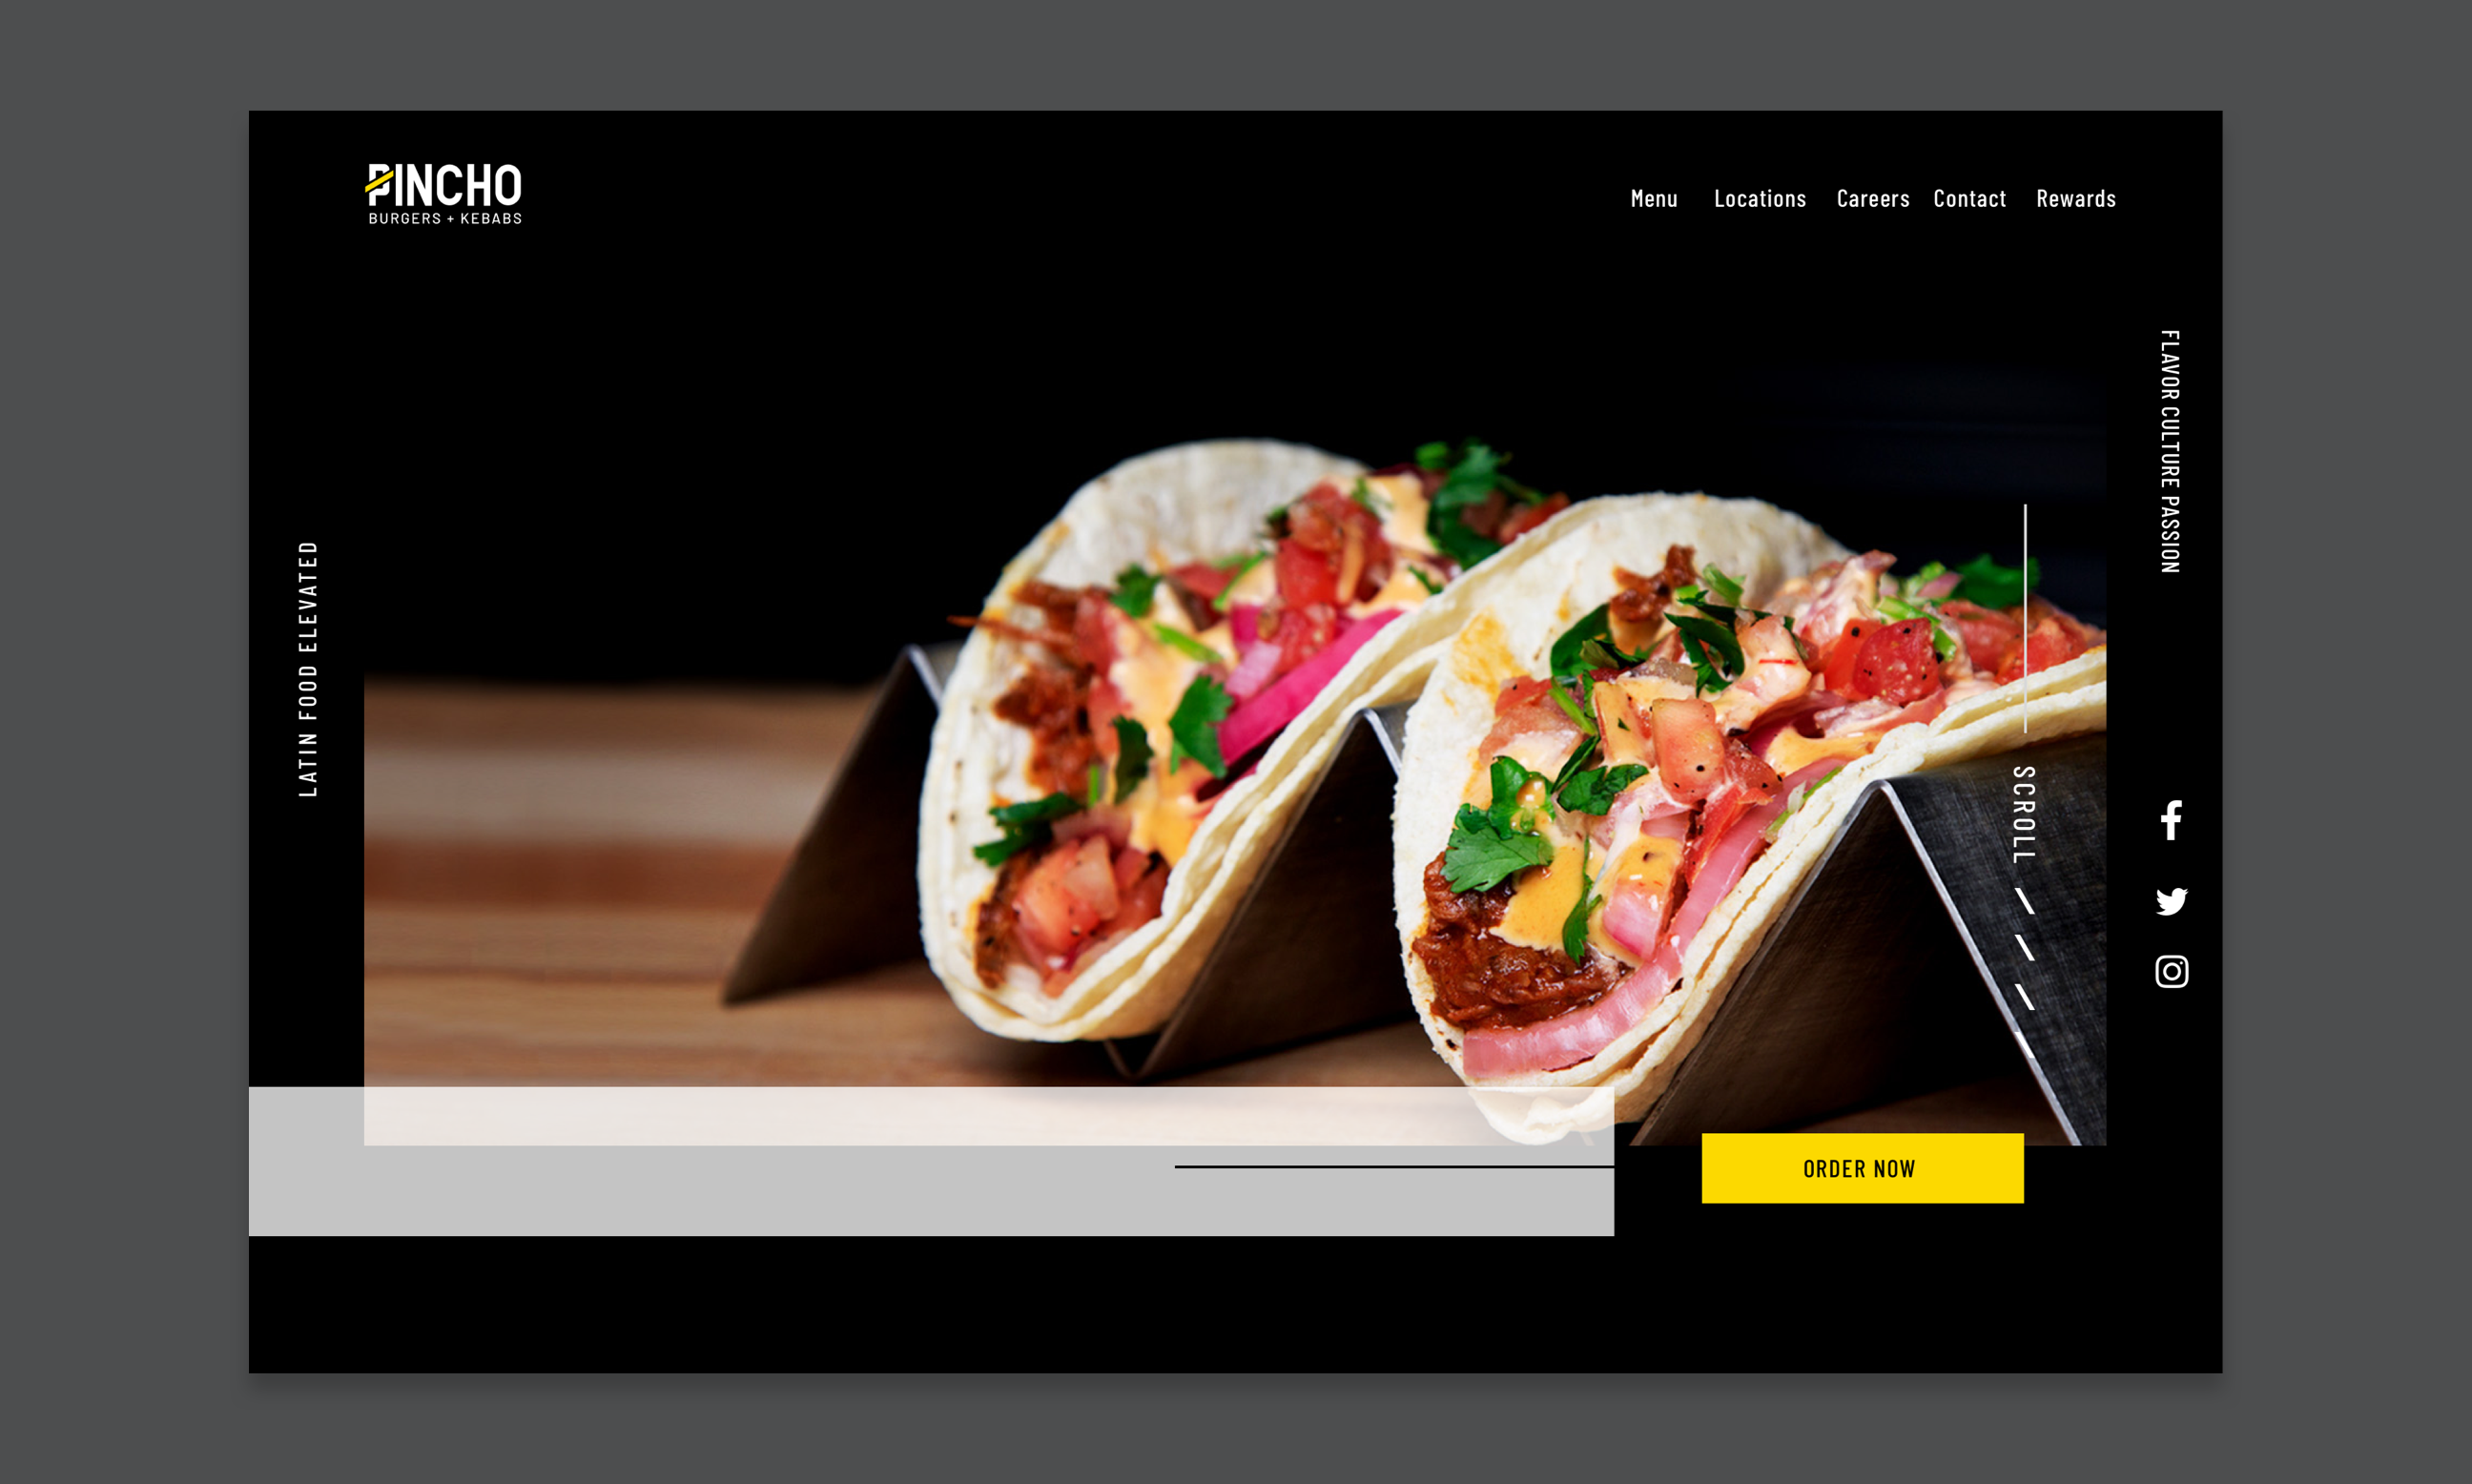 Image of the menu with picture of tacos with Order Now cta